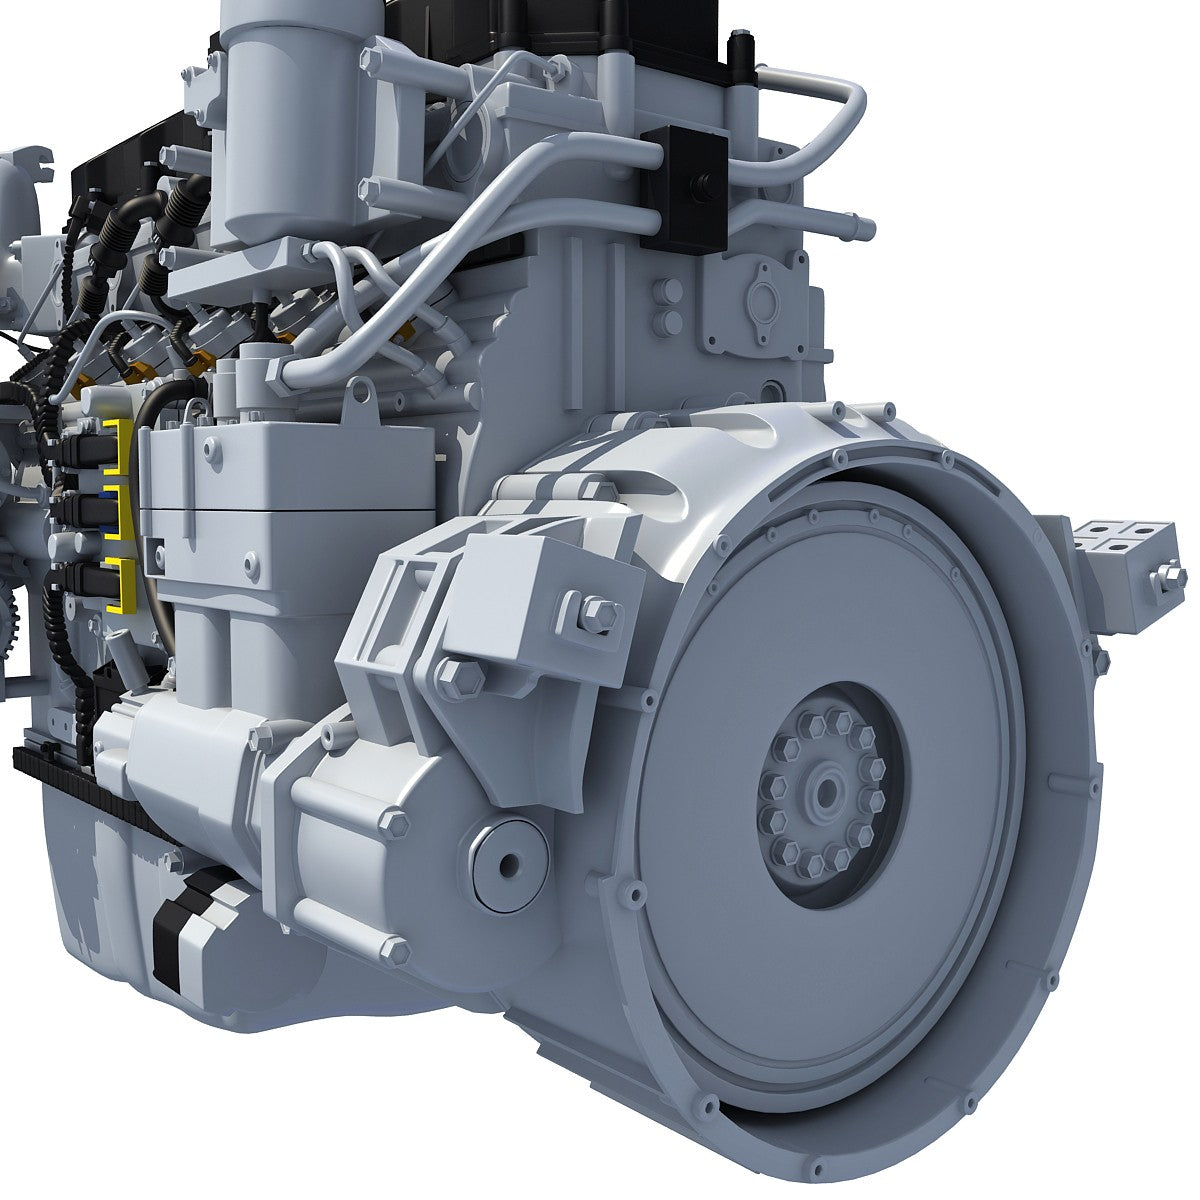 PACCAR Truck Engines